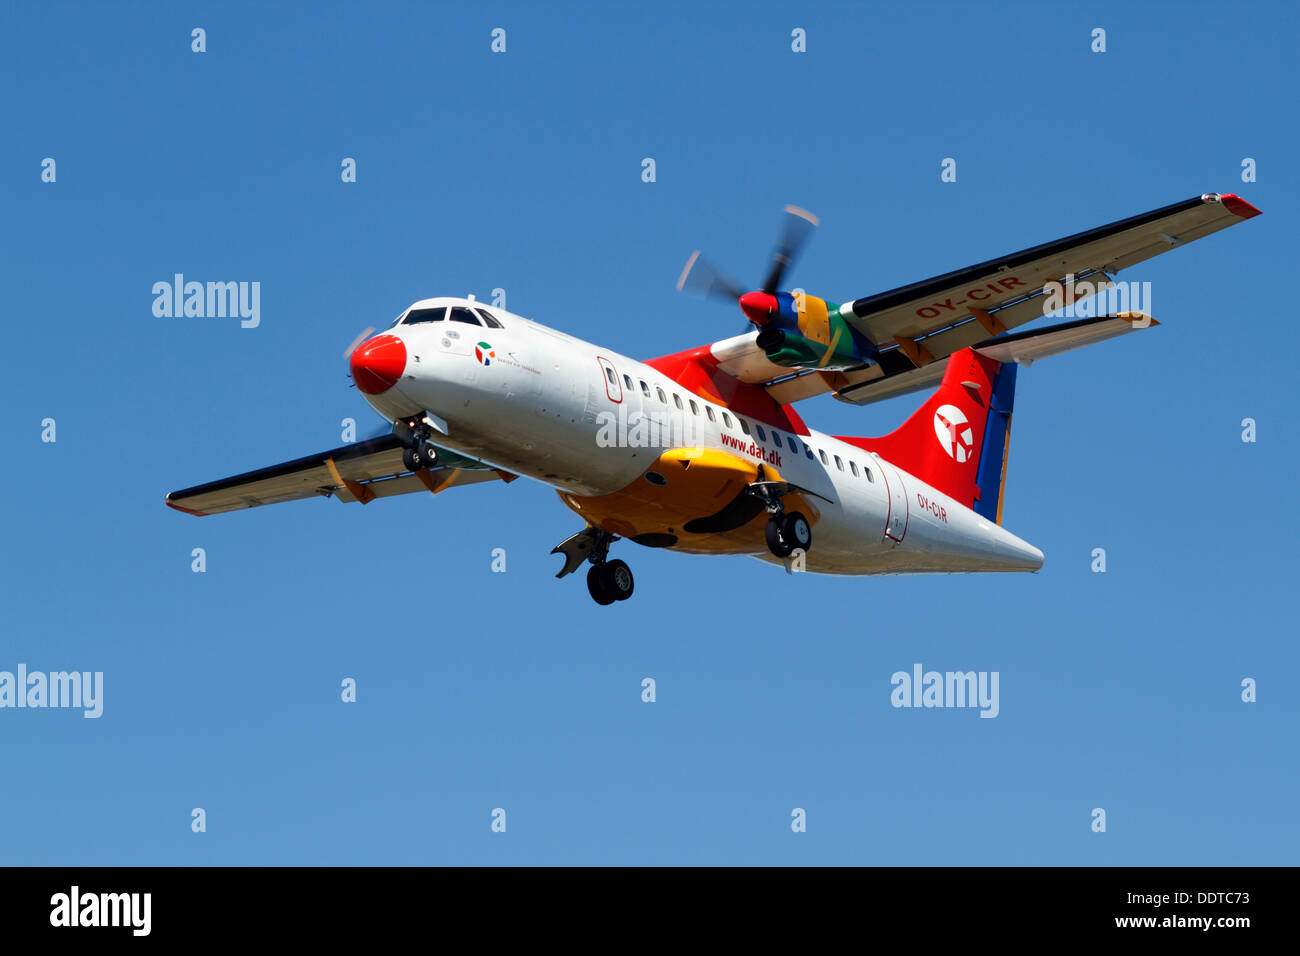 DAT ATR 42-300, OY-CIR, on final approach to Copenhagen Airport, CPH, Kastrup. Twin-turboprop, short-haul. - Stock Image